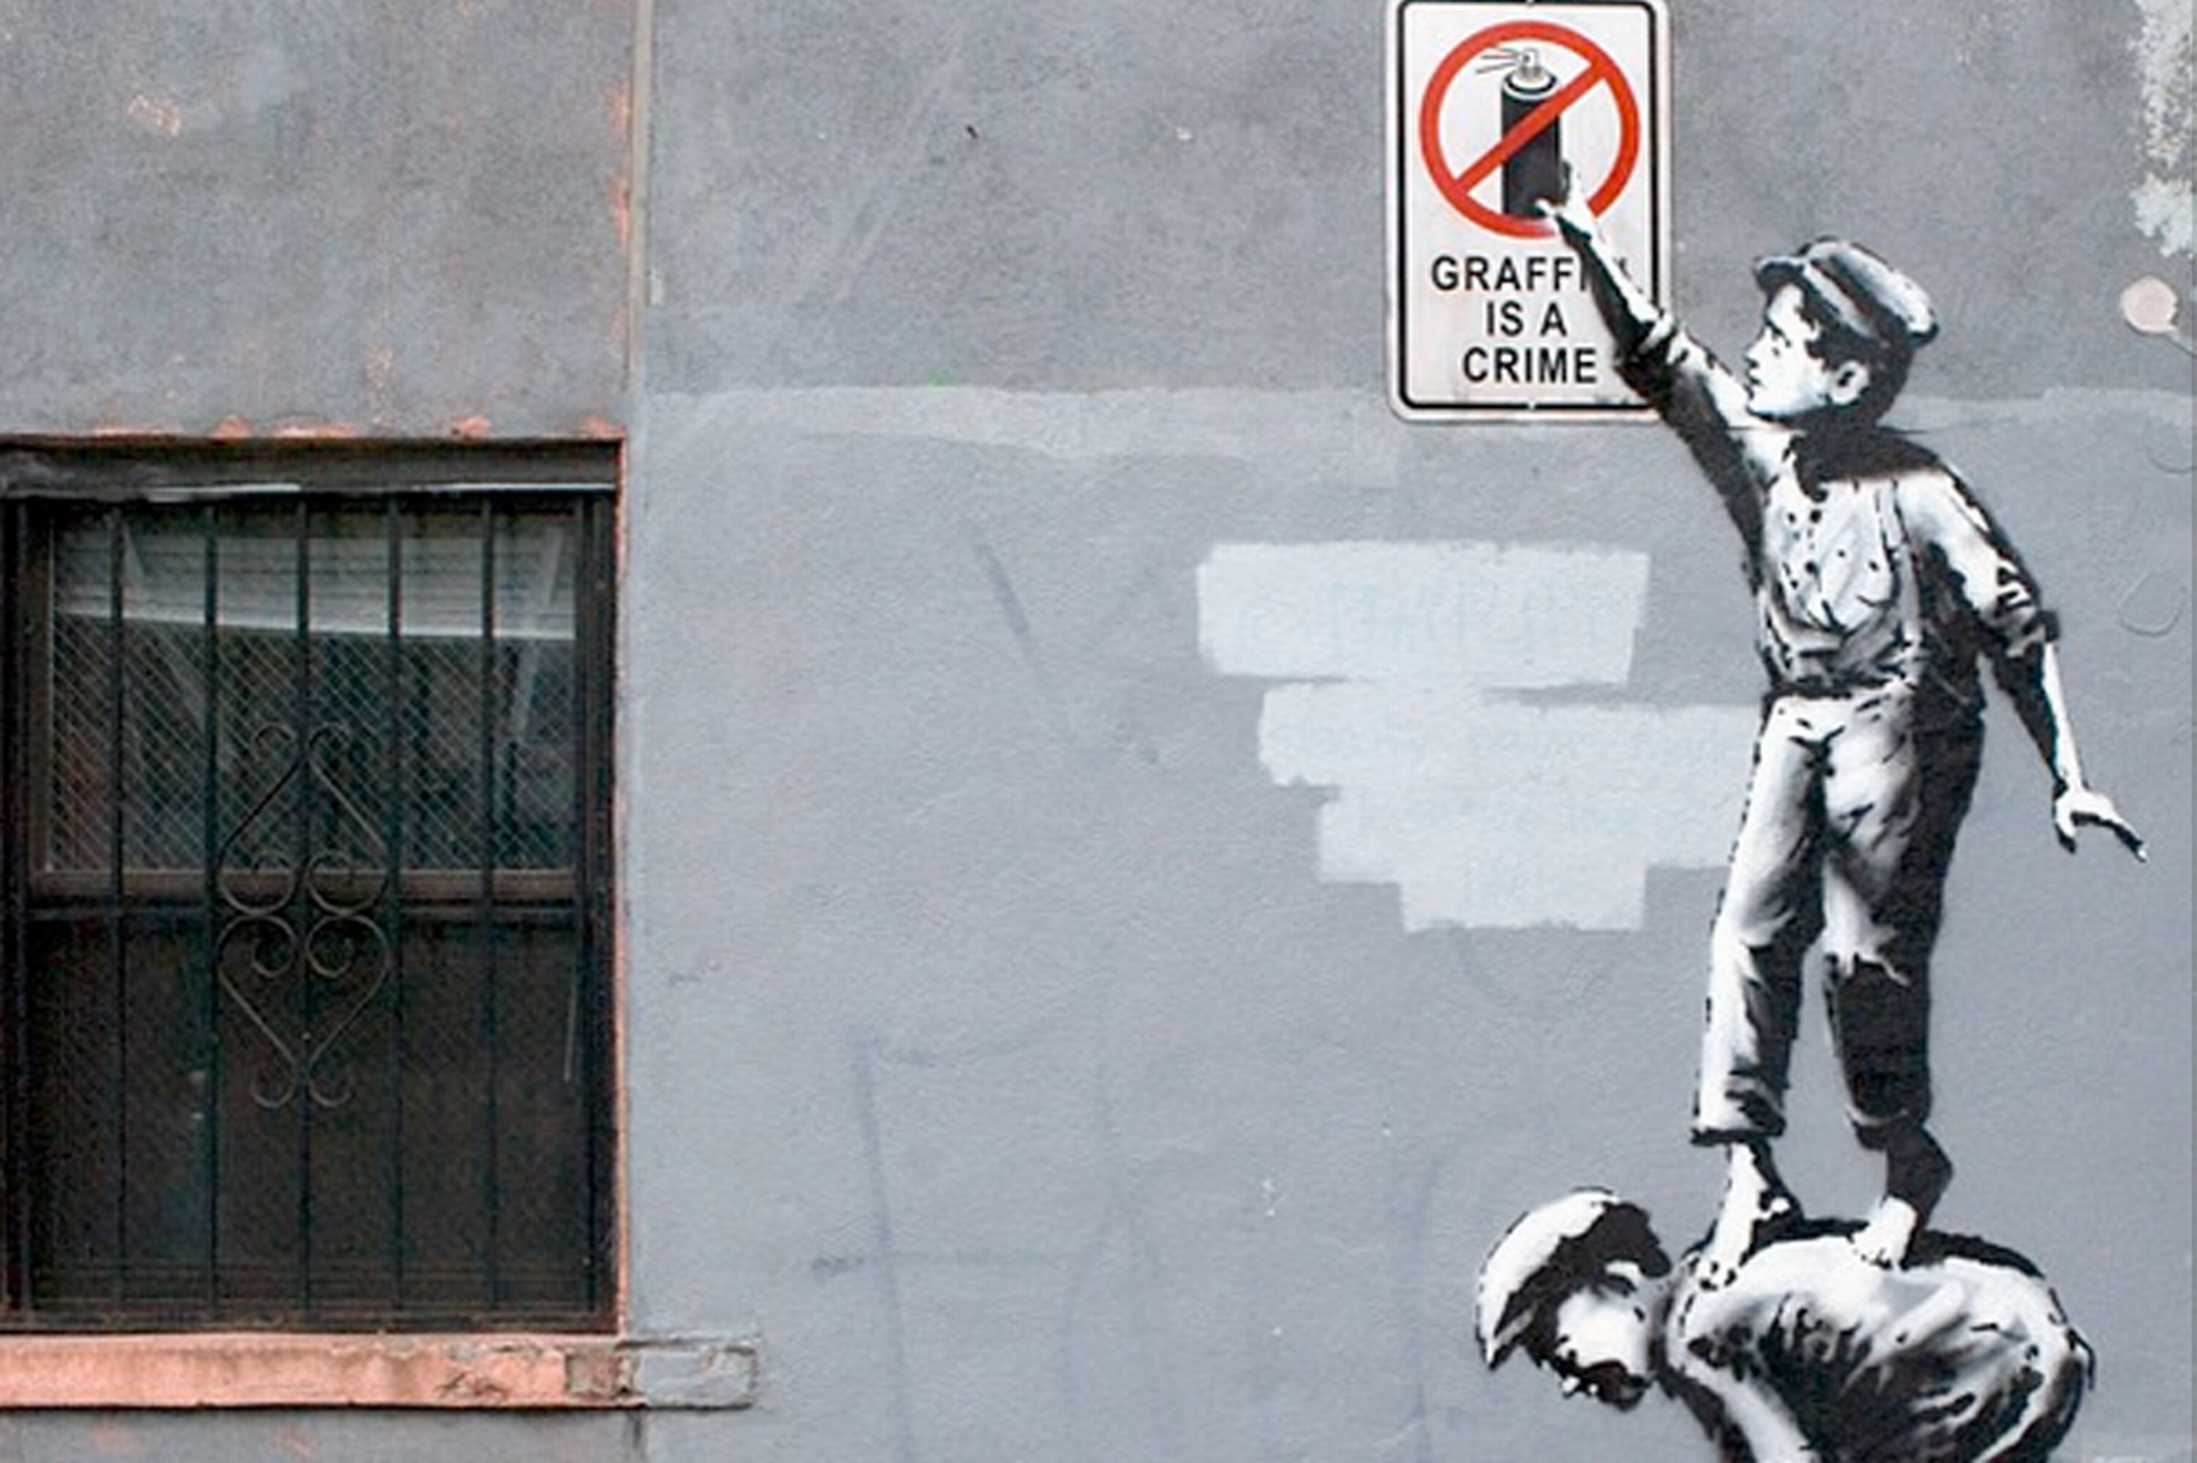 BANKSY-GRAFFITI-The-street-is-in-play-Manhattan-2013-banksyny-2330269